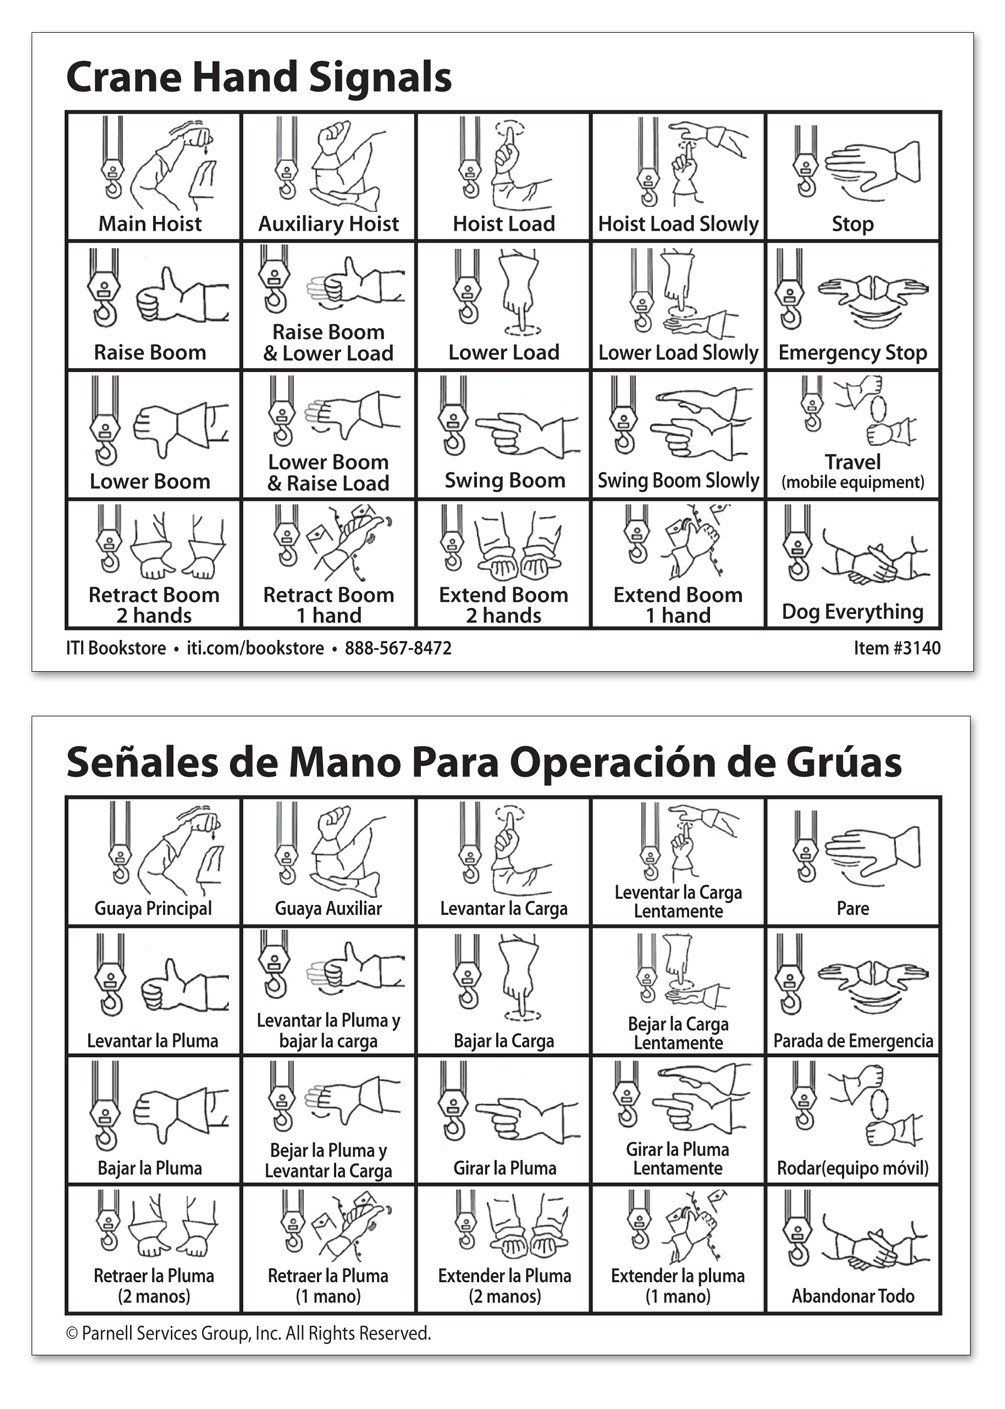 Crane Hand Signal Card English Spanish Hand Signals Plumbing Problems Reference Cards